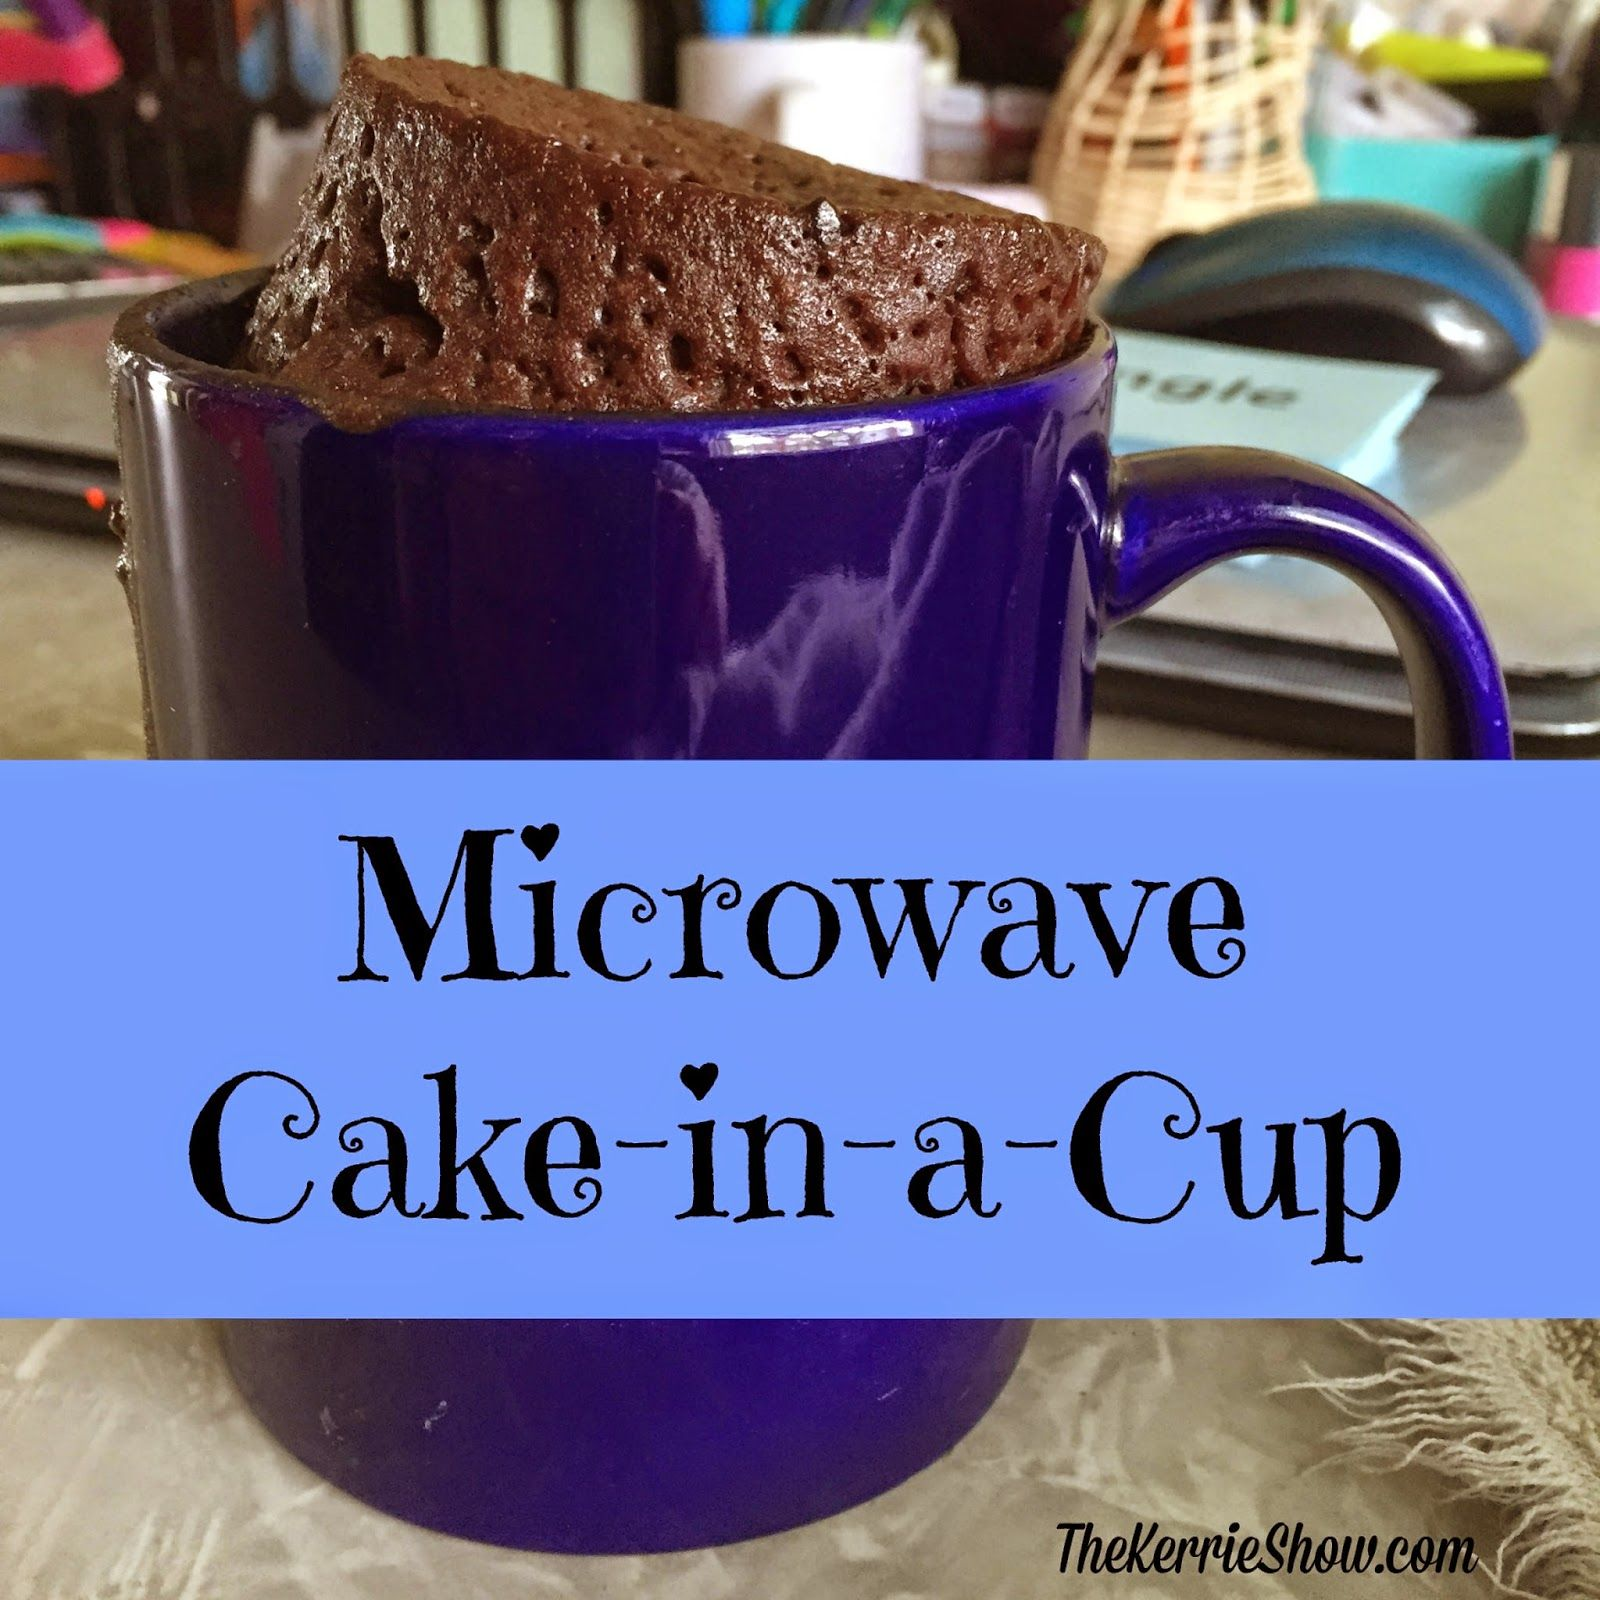 Microwave Cake in a Cup CakeInACup Mug recipes